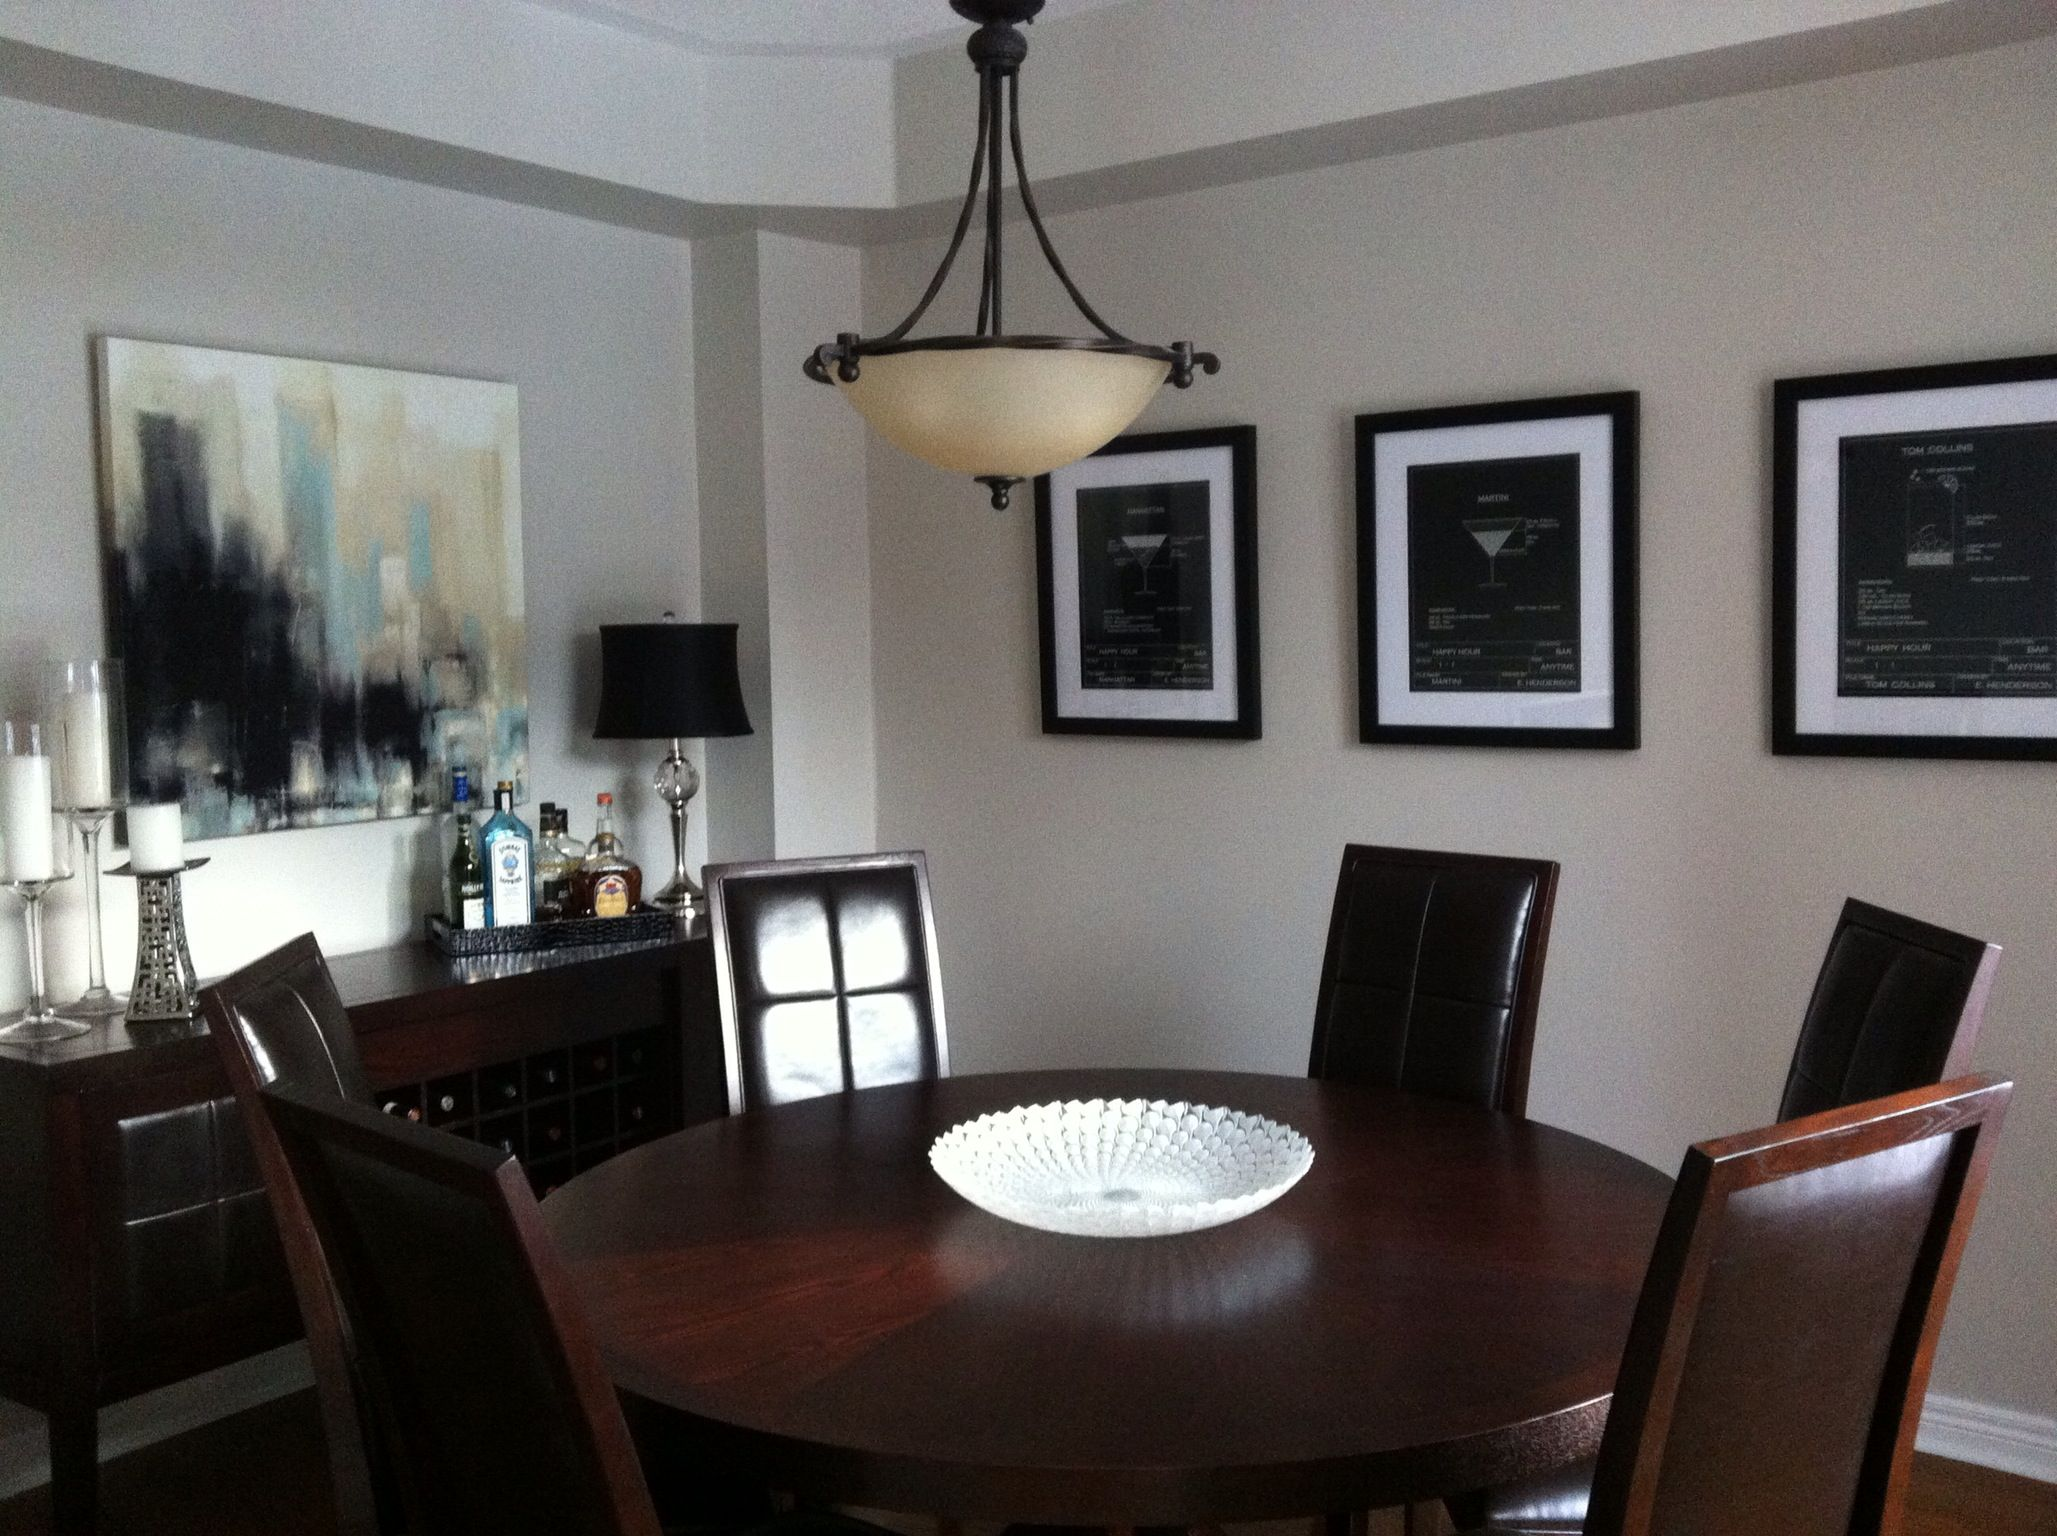 Dining room redo benjamin moore paint collingwood - Benjamin moore interior paint colors ...